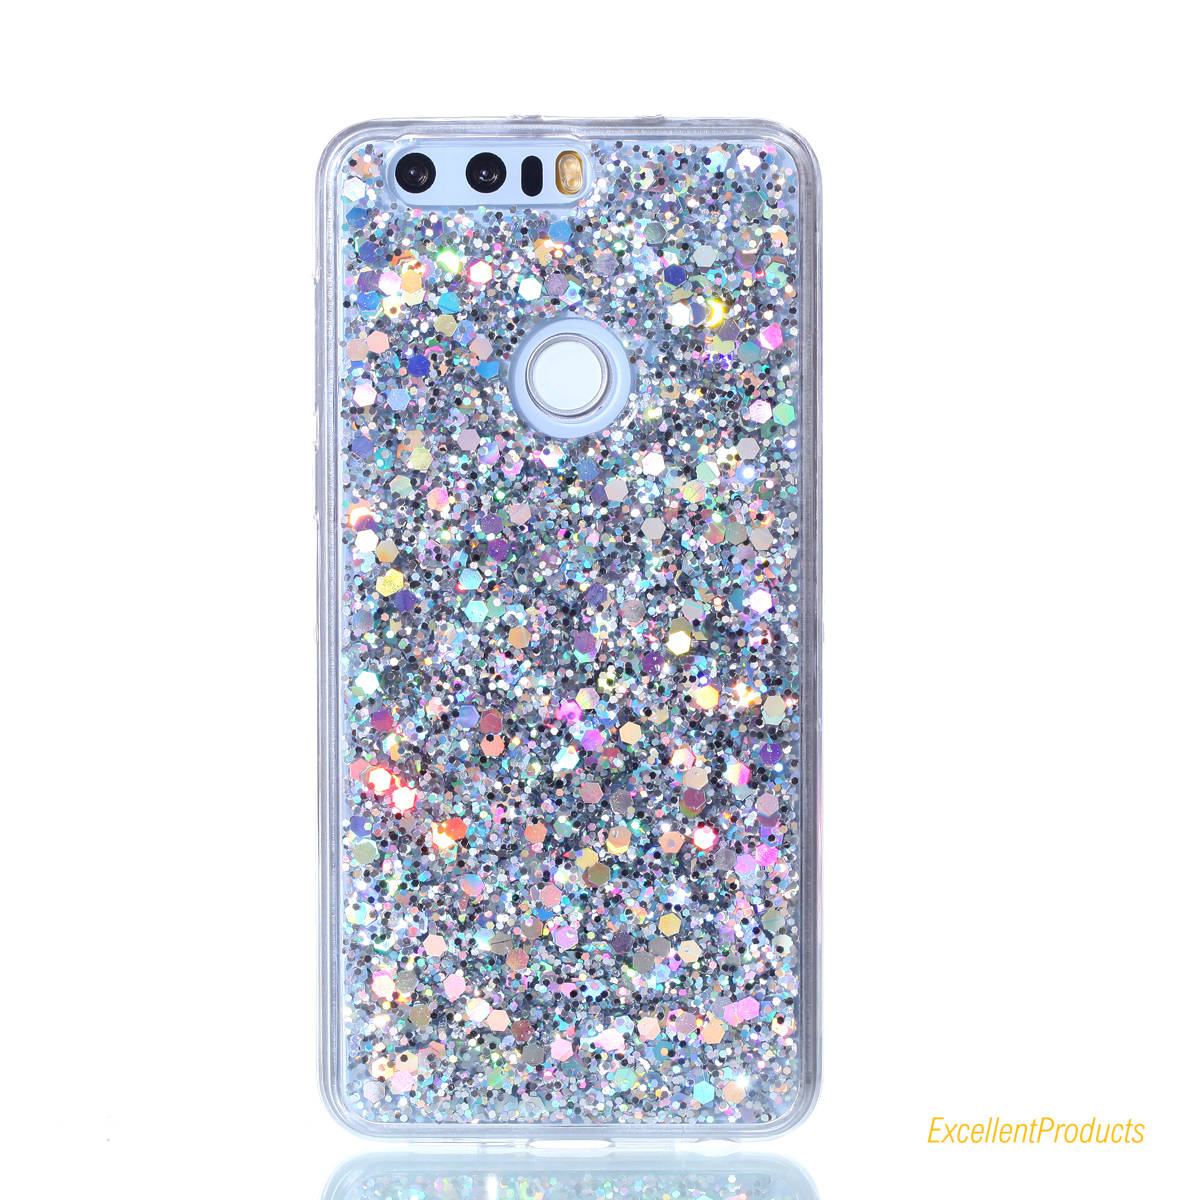 US $3 73 12% OFF|Aliexpress com : Buy For Huawei Honor 8 Case Luxury Bling  Glitter Star Phone Cases Flashing Powder Soft TPU Back Cover Capa Coque